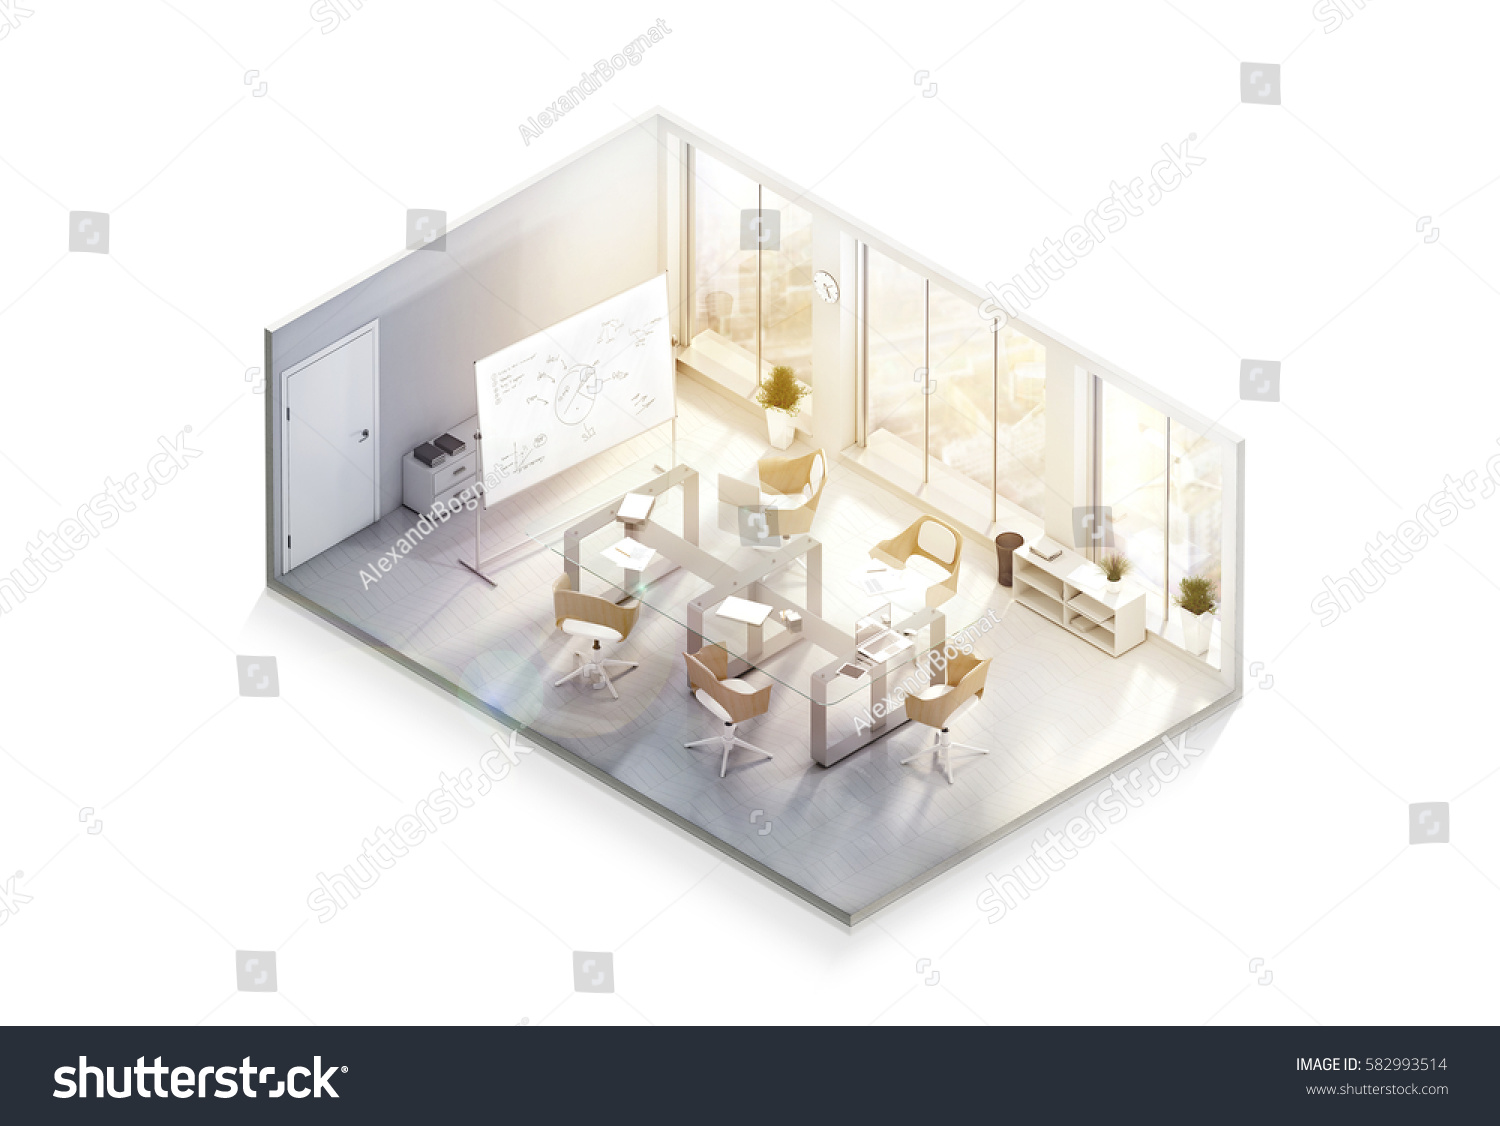 Modern Office Interior Design Mockup Isometric View Isolated 3d Rendering Empty Conference